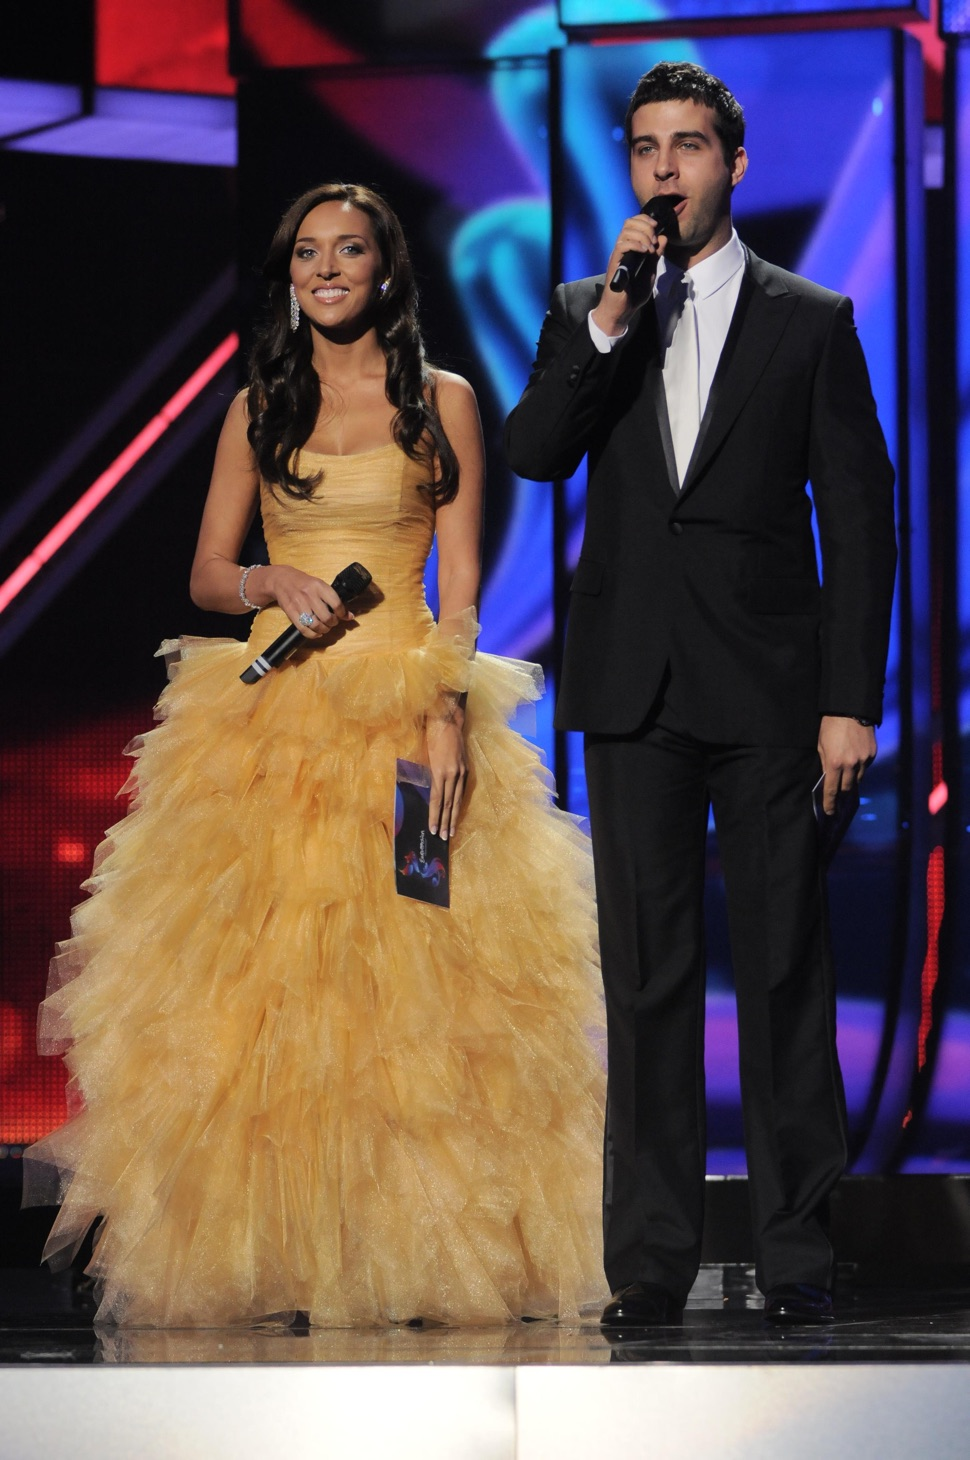 Alsou in yellow dress smiling and Ivan Urgant in smoking, on stage, both with microphones